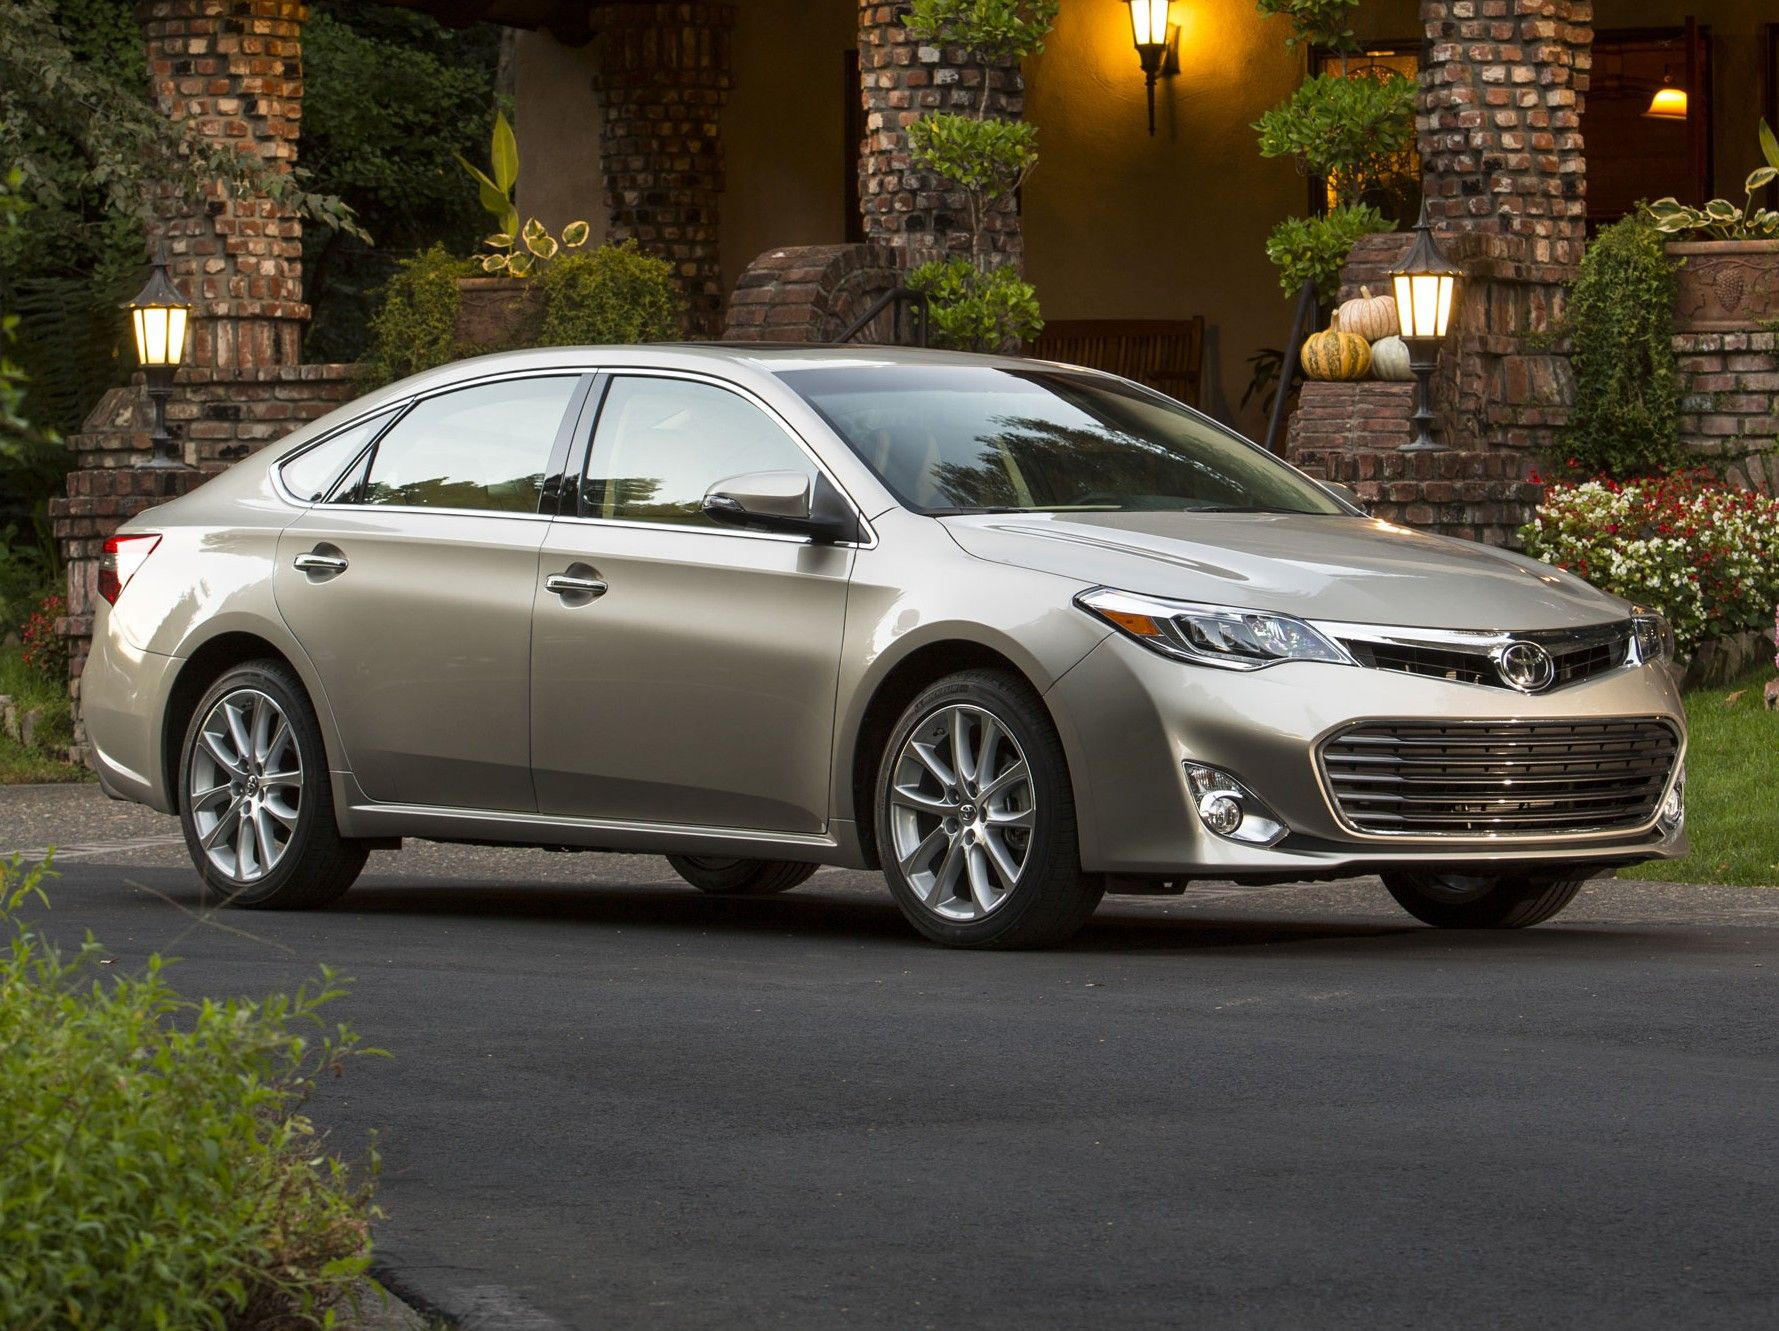 Used Toyota Camry For Sale Your Car Today Pinterest